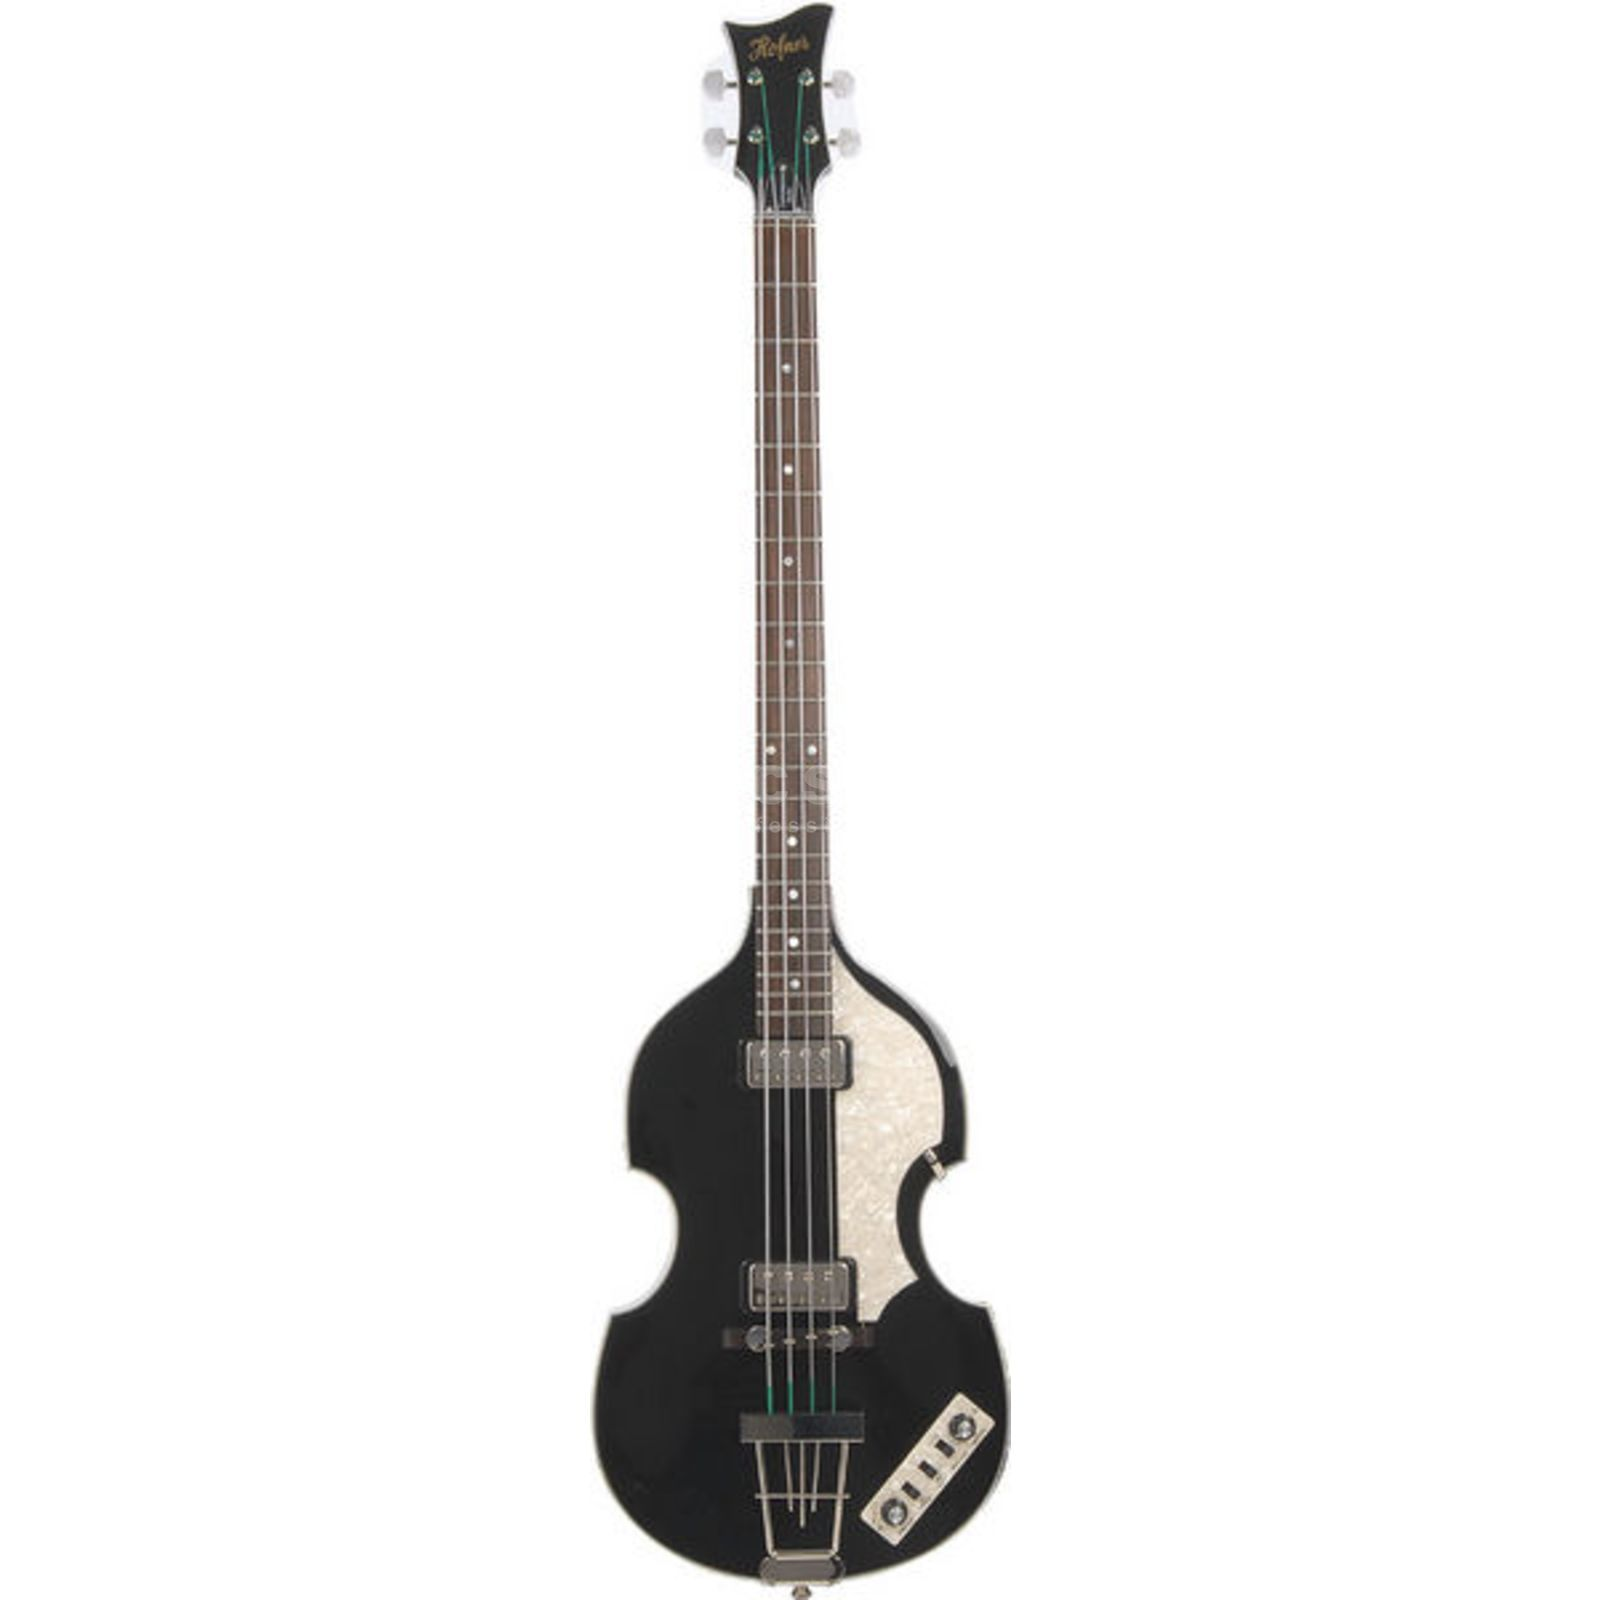 Höfner Contemporary Violin Bass Black HCT-500/1-BK B-Stock Zdjęcie produktu